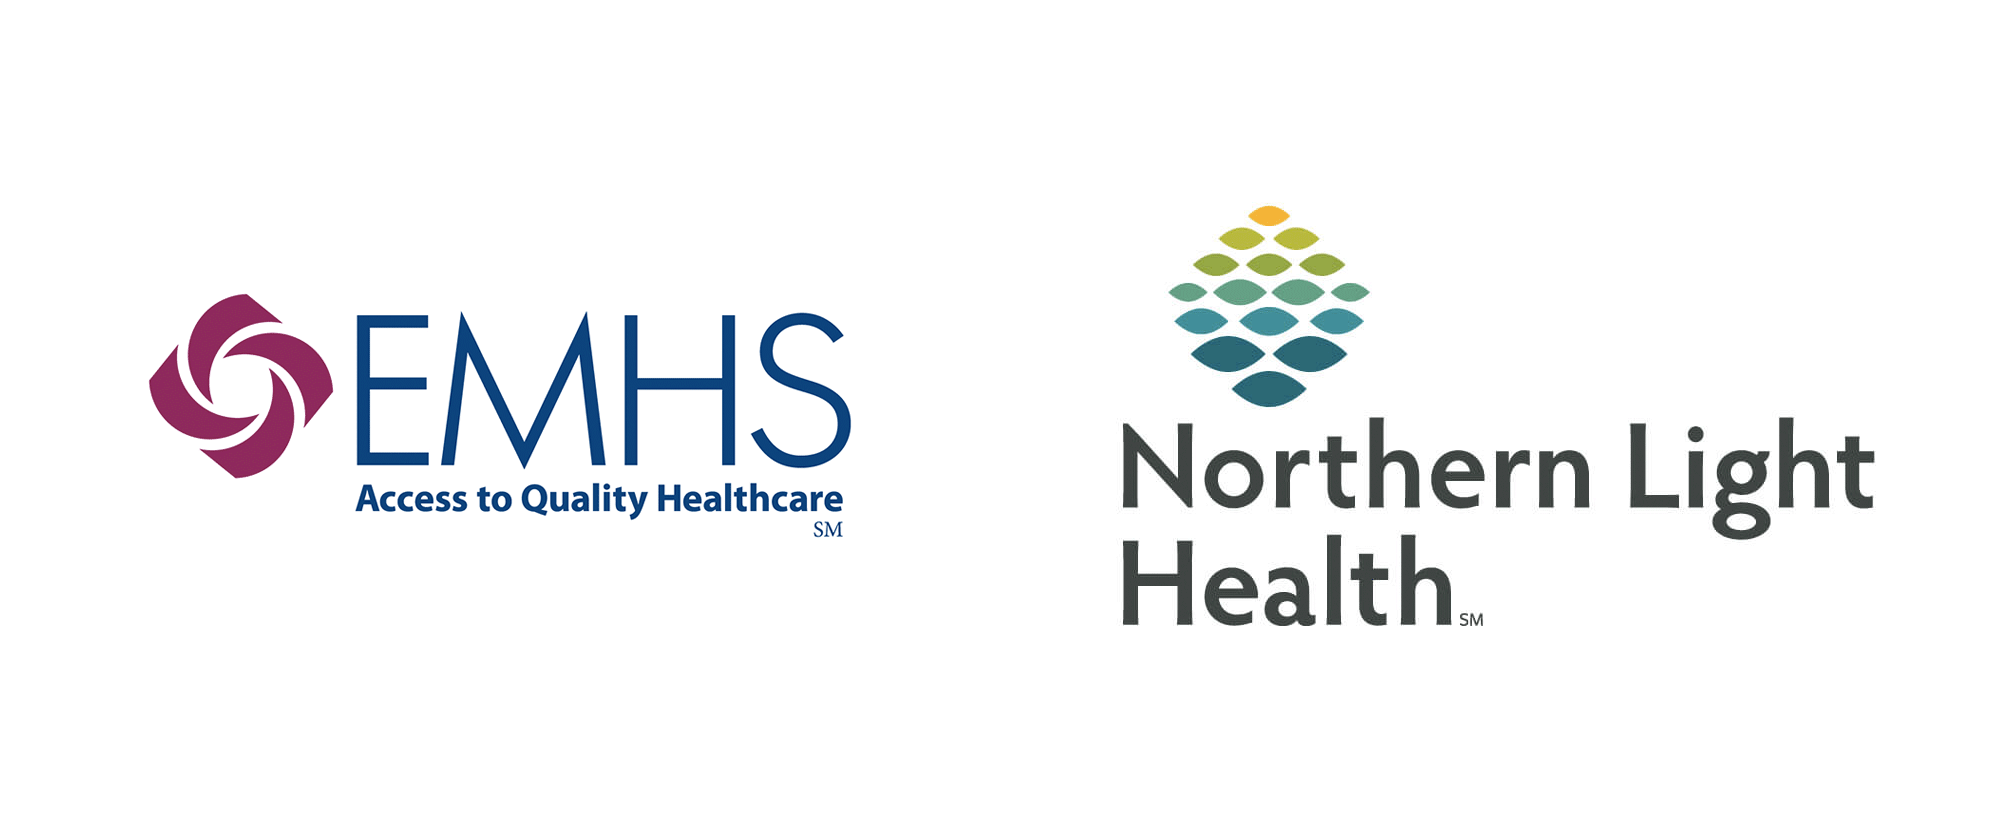 New Name, Logo, and Identity for Northern Light Health by Monigle